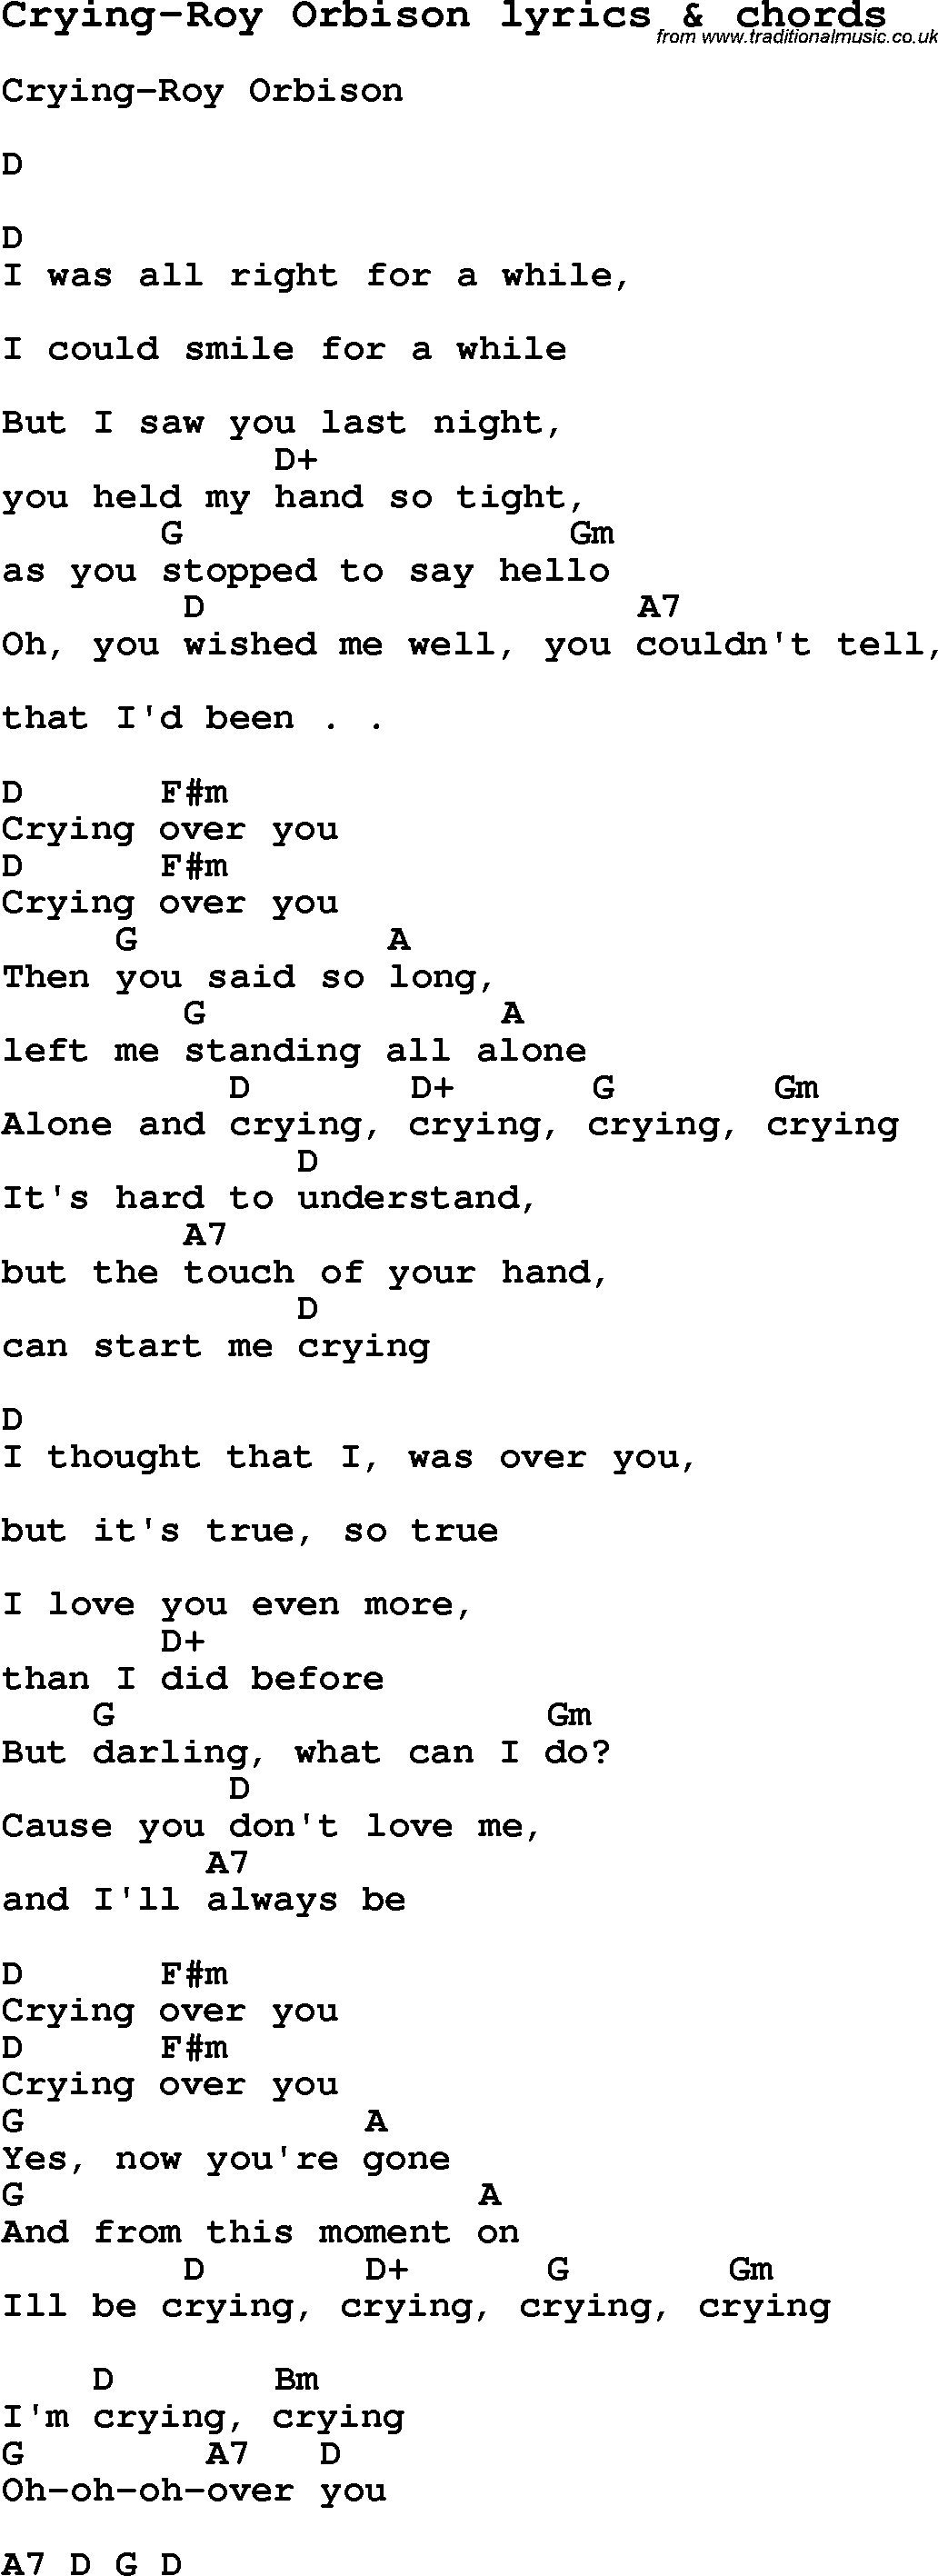 Love Song Lyrics For Crying Roy Orbison With Chords For Ukulele